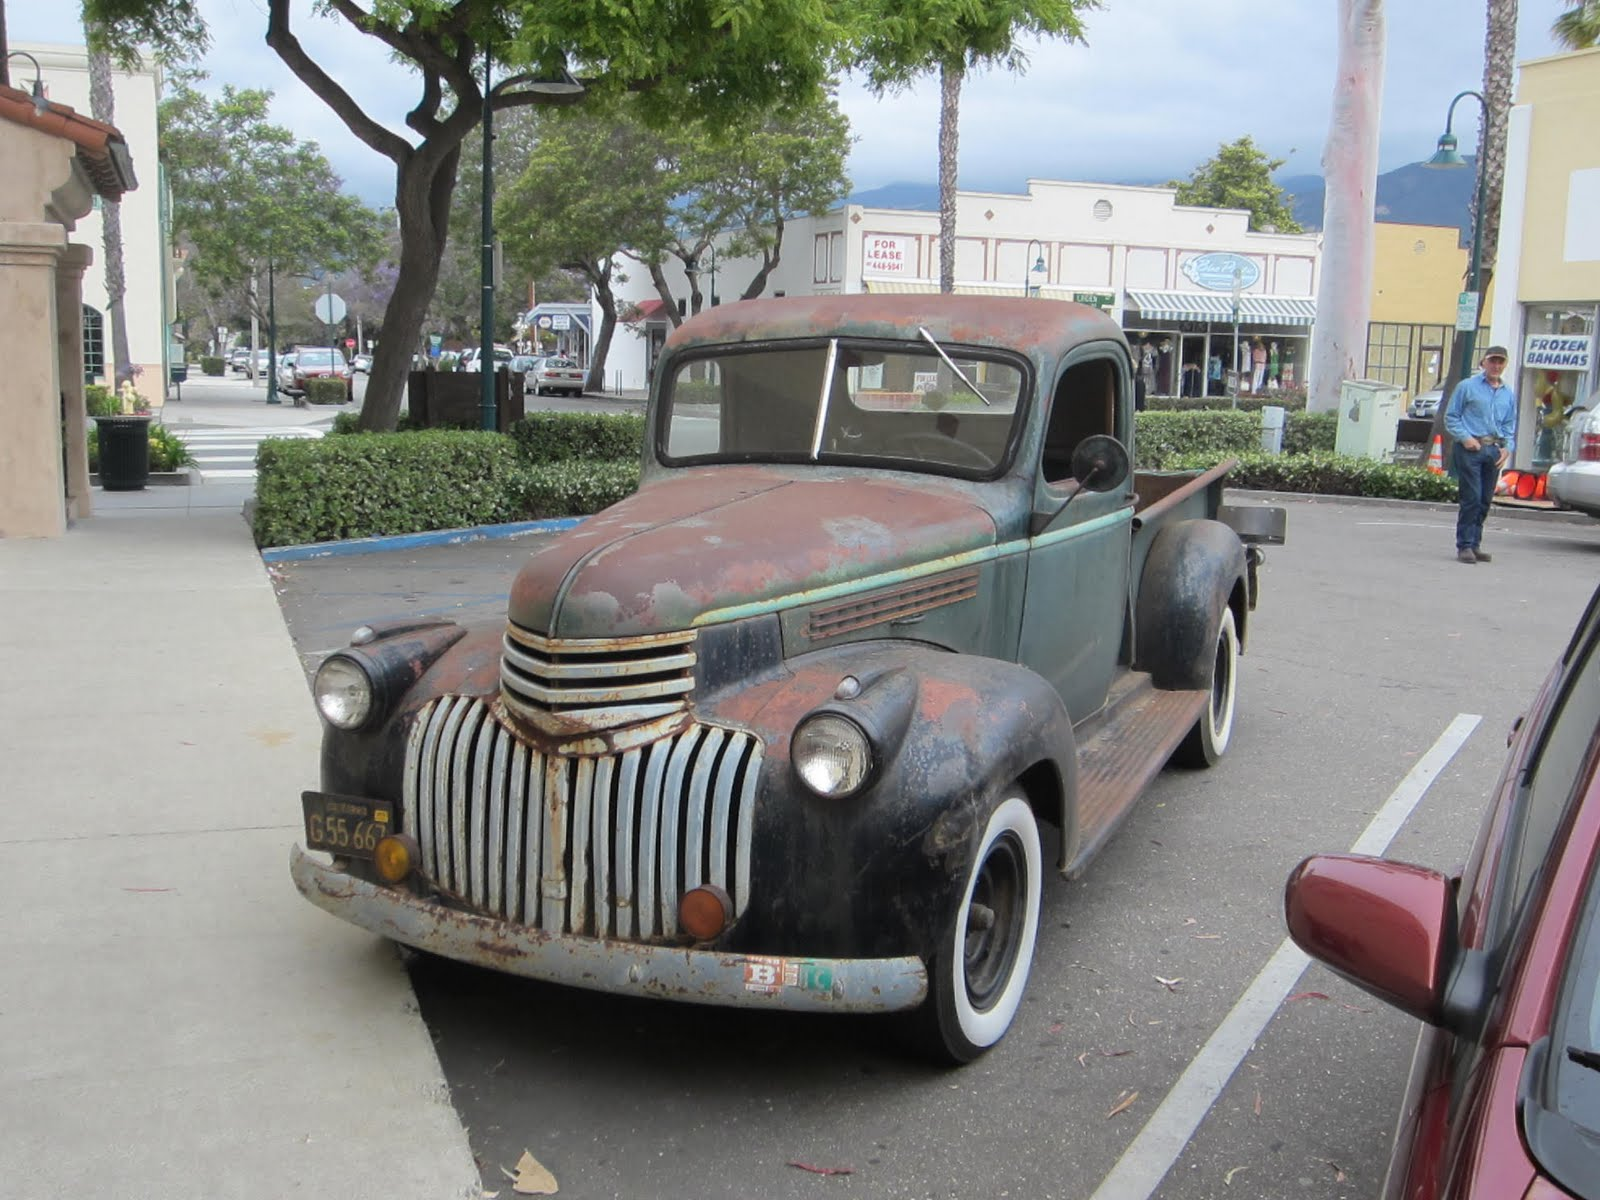 autoliterate: 1941-46 Chevrolet pickup, and The Last Picture Show